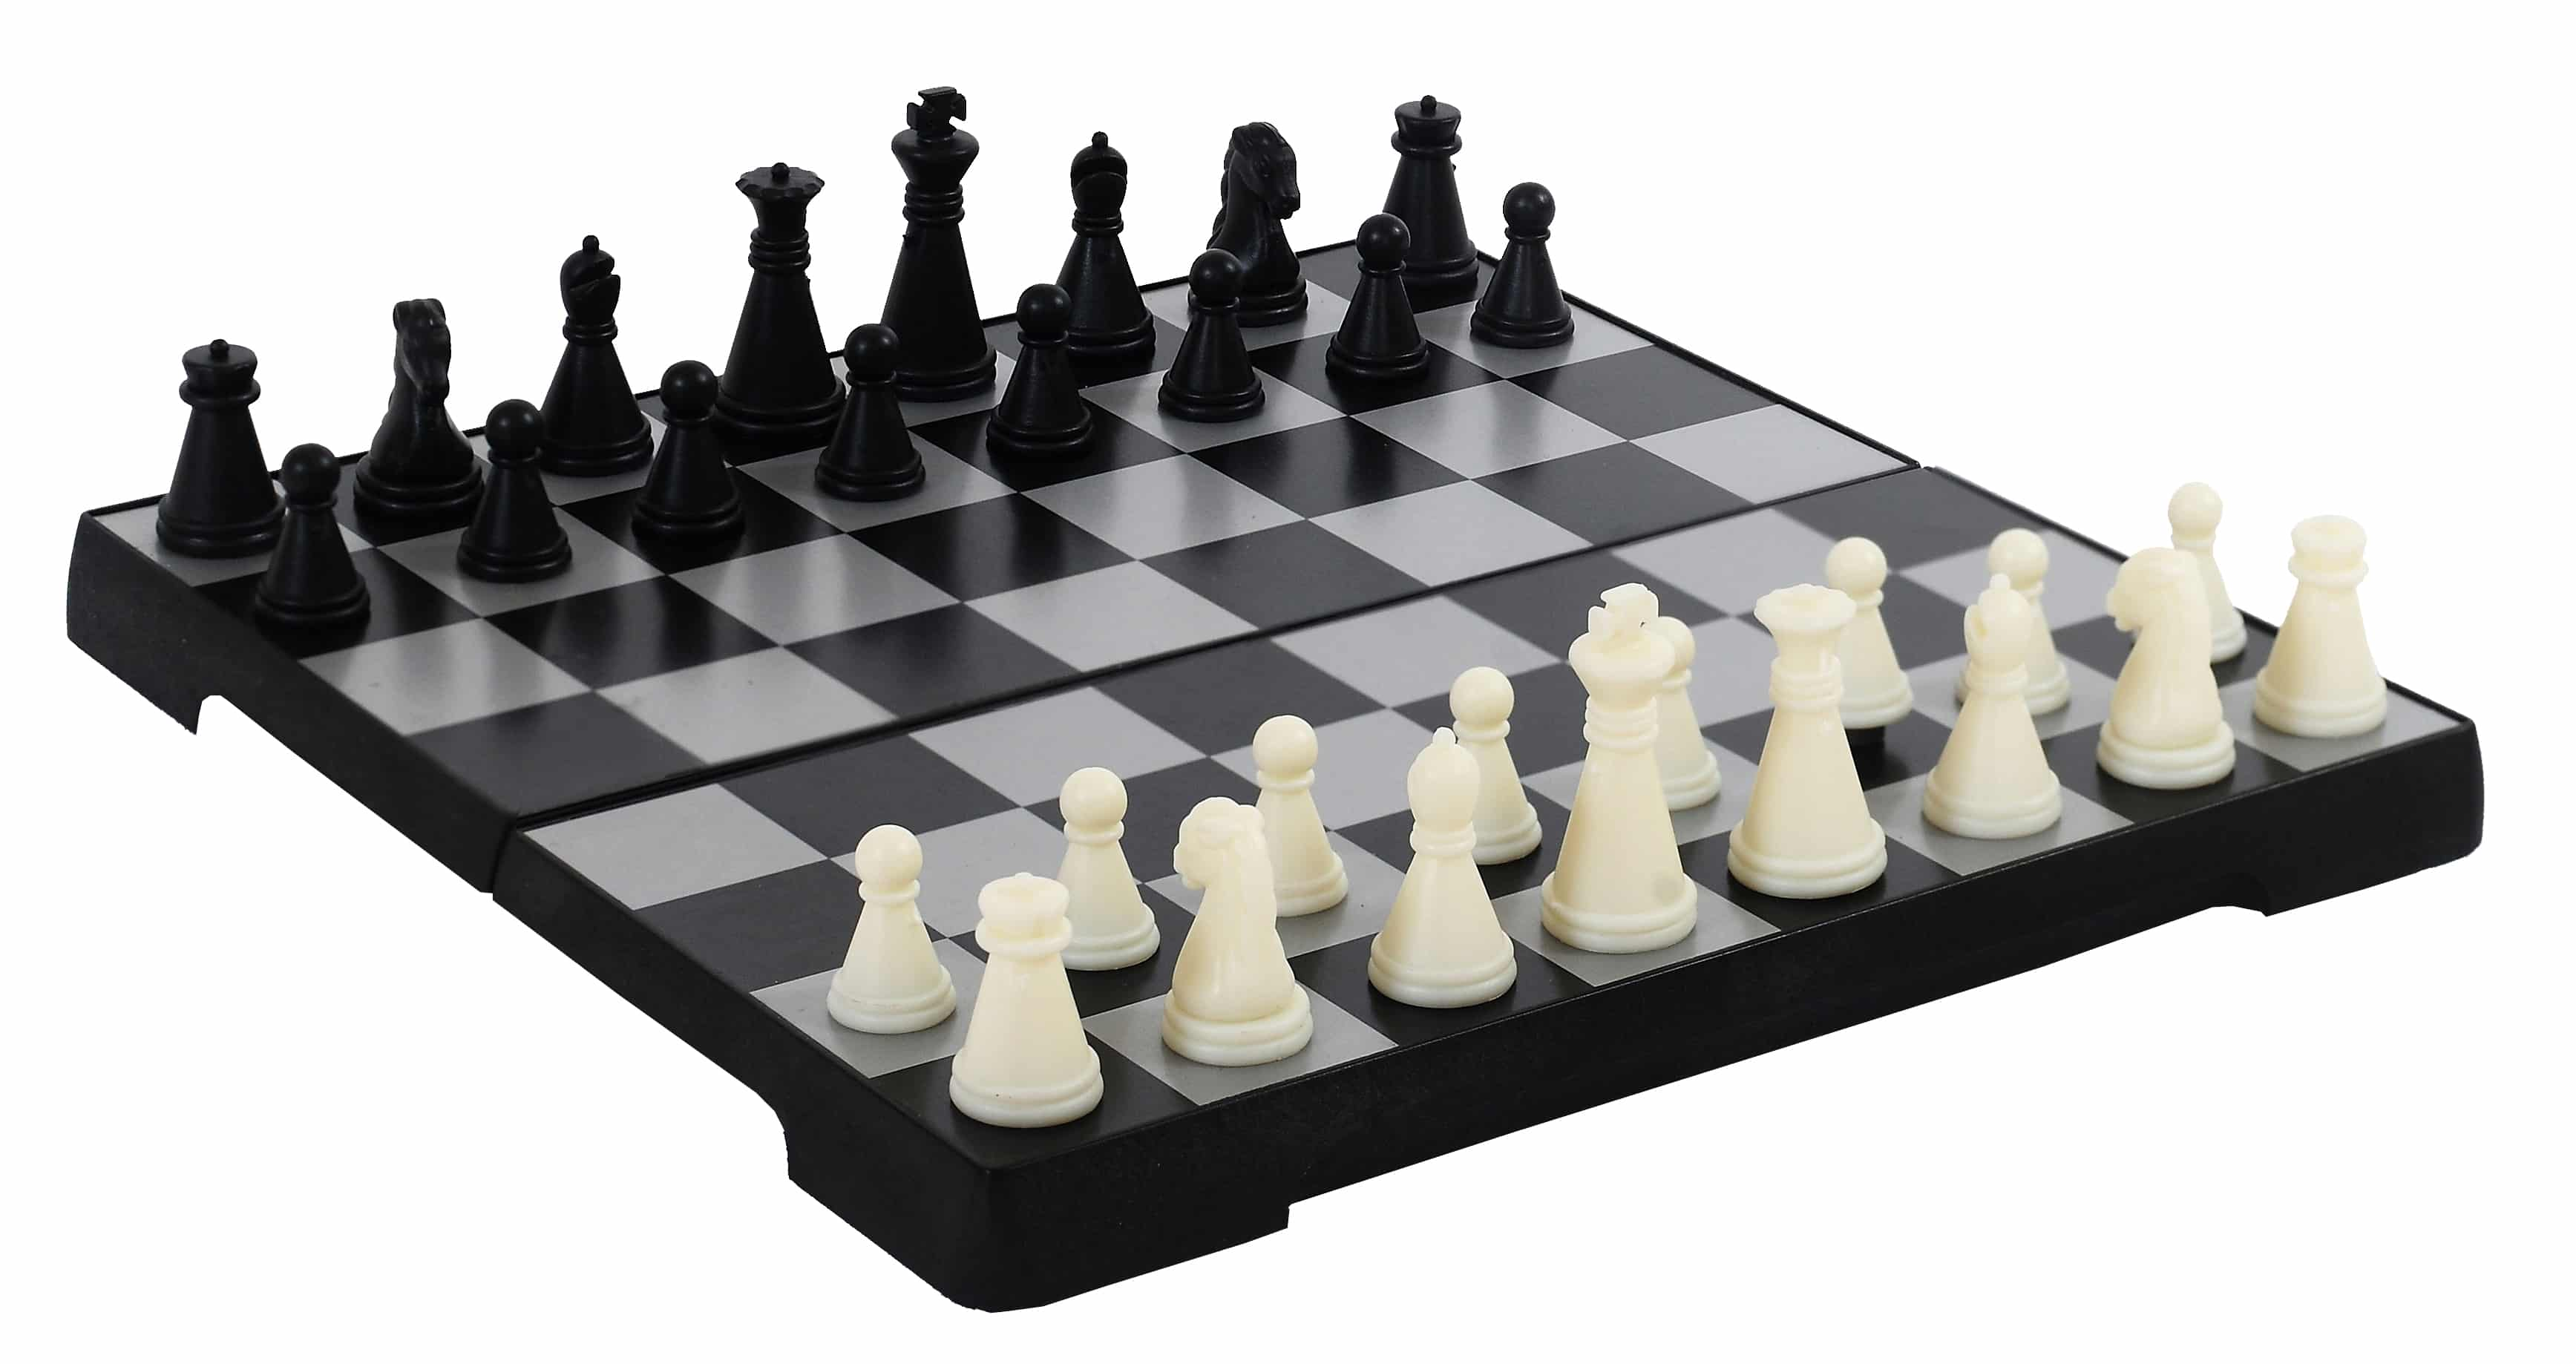 Picture of a black and white chess set.